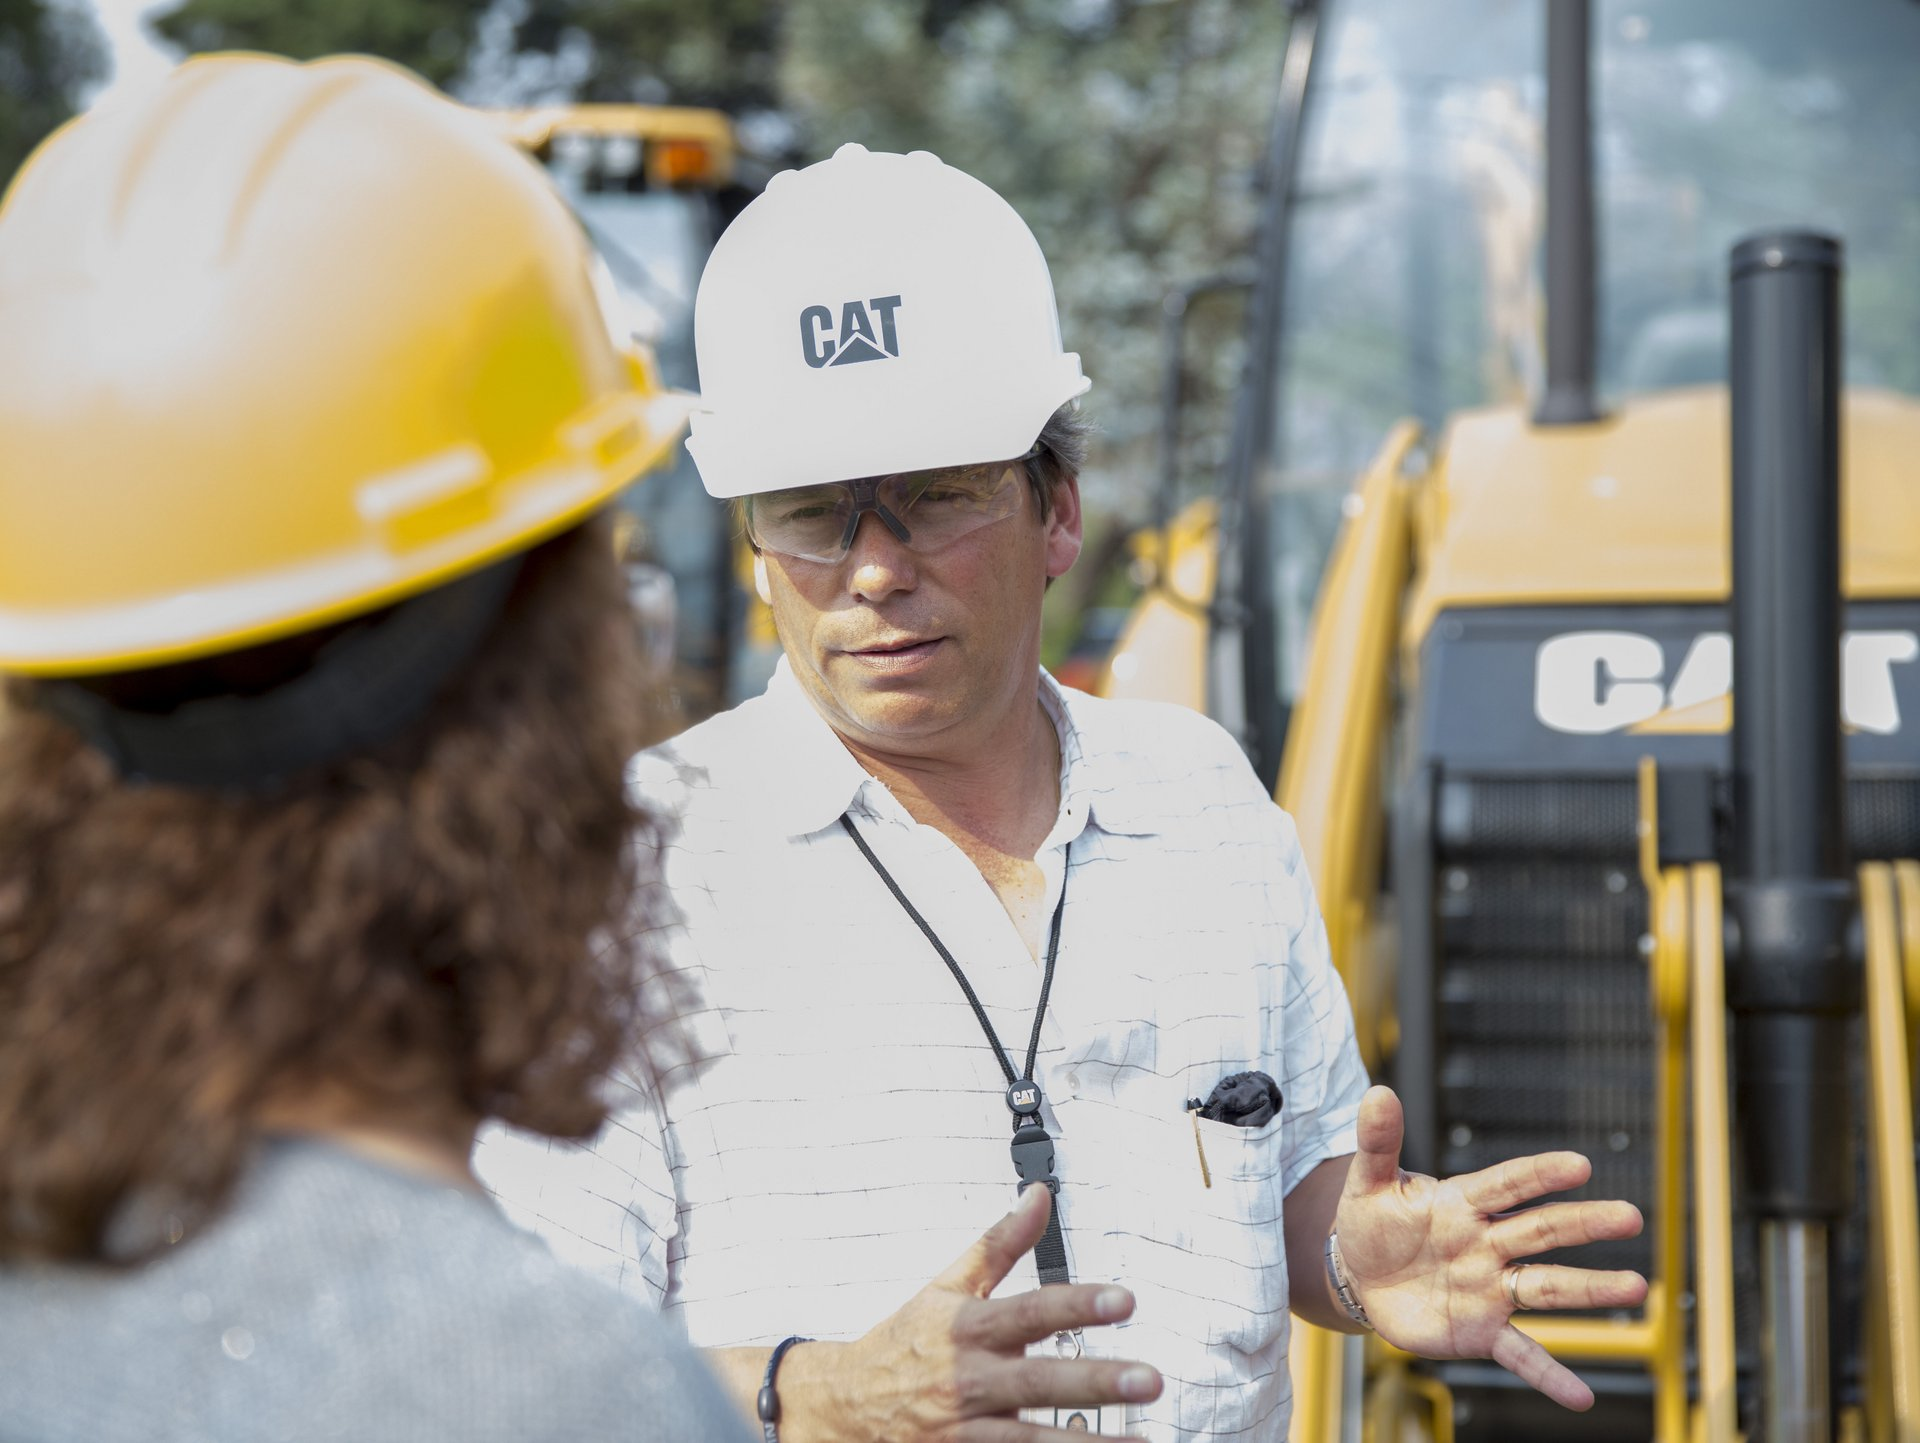 Cat Financial solutions for any Cat equipment